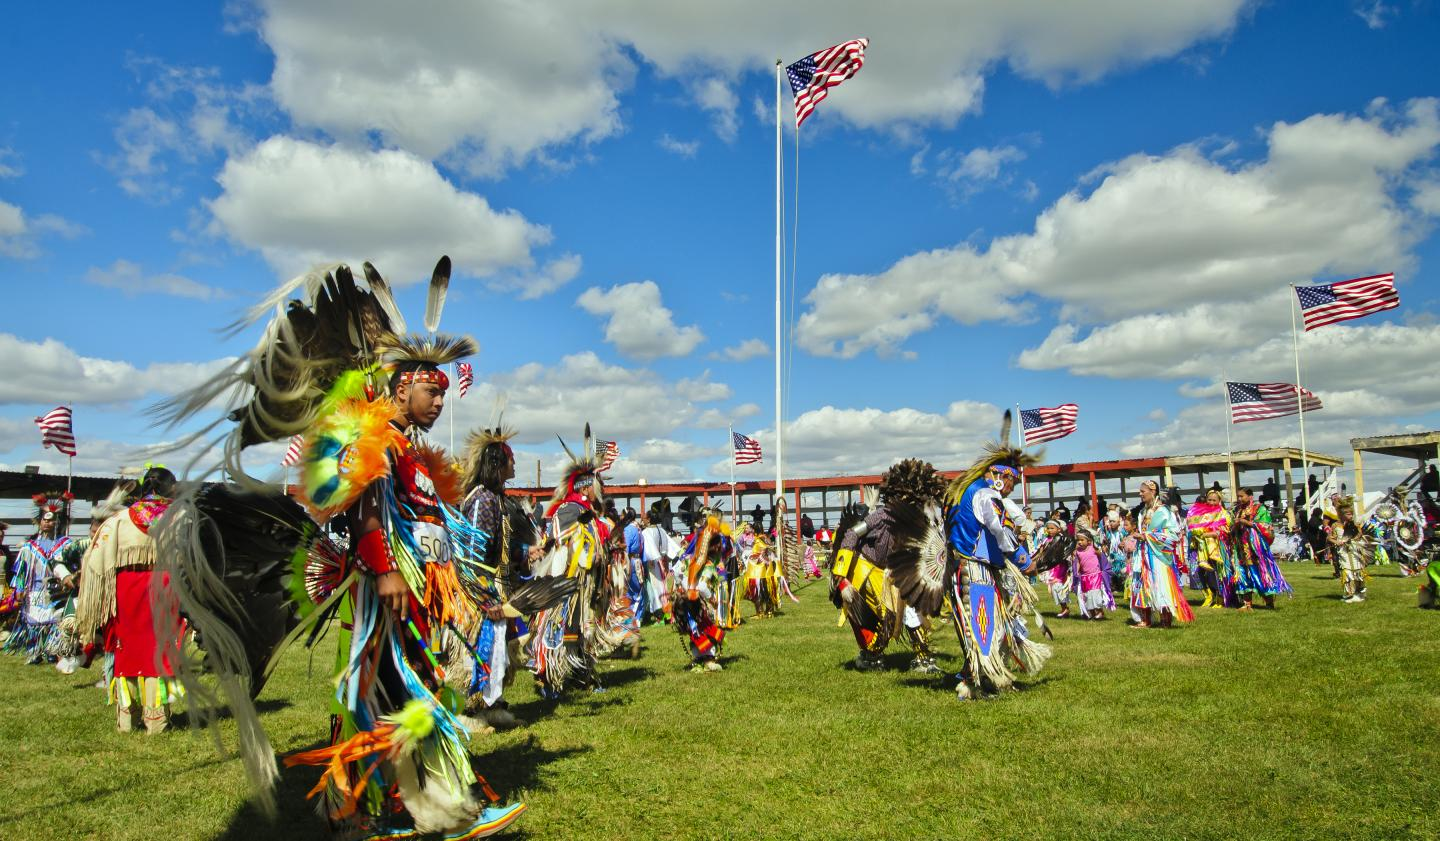 Wacipis or powwows are Native American dances.